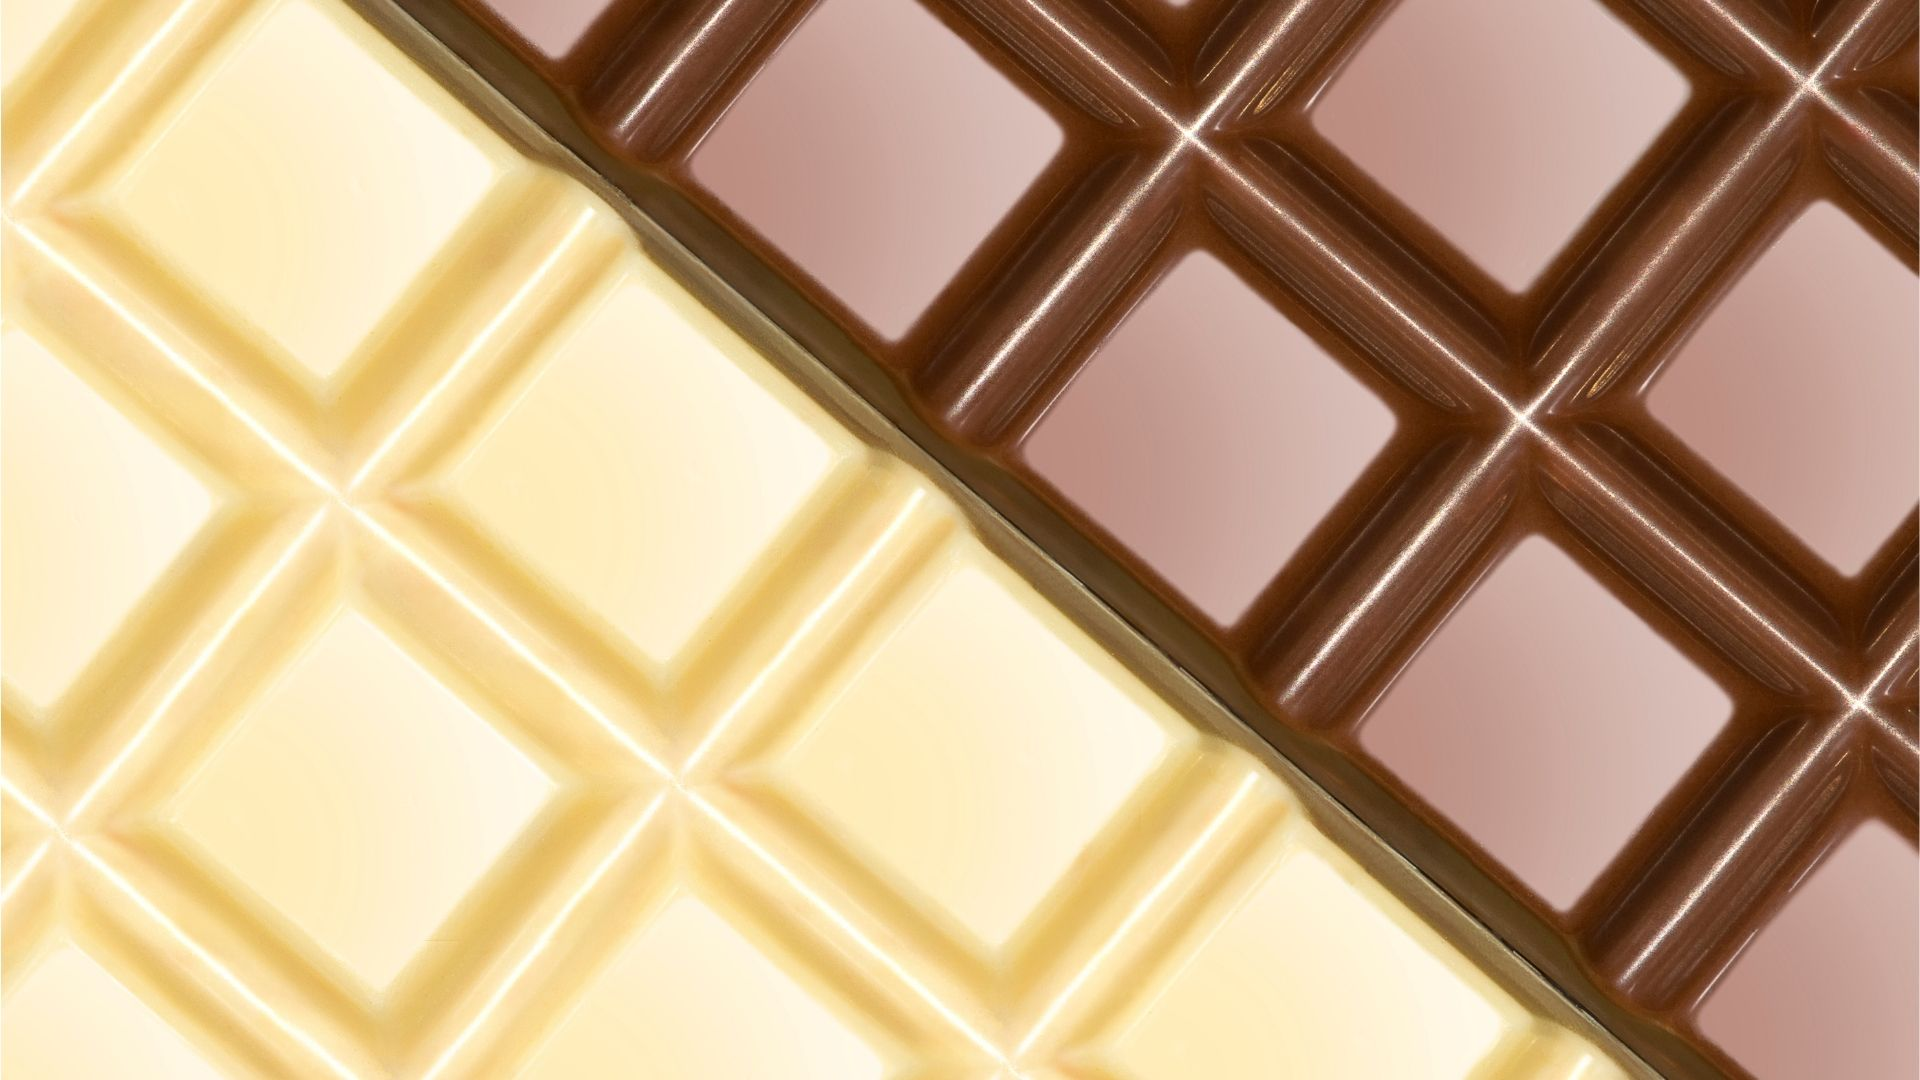 Cannabis and Chocolate: A Match Made in Heaven